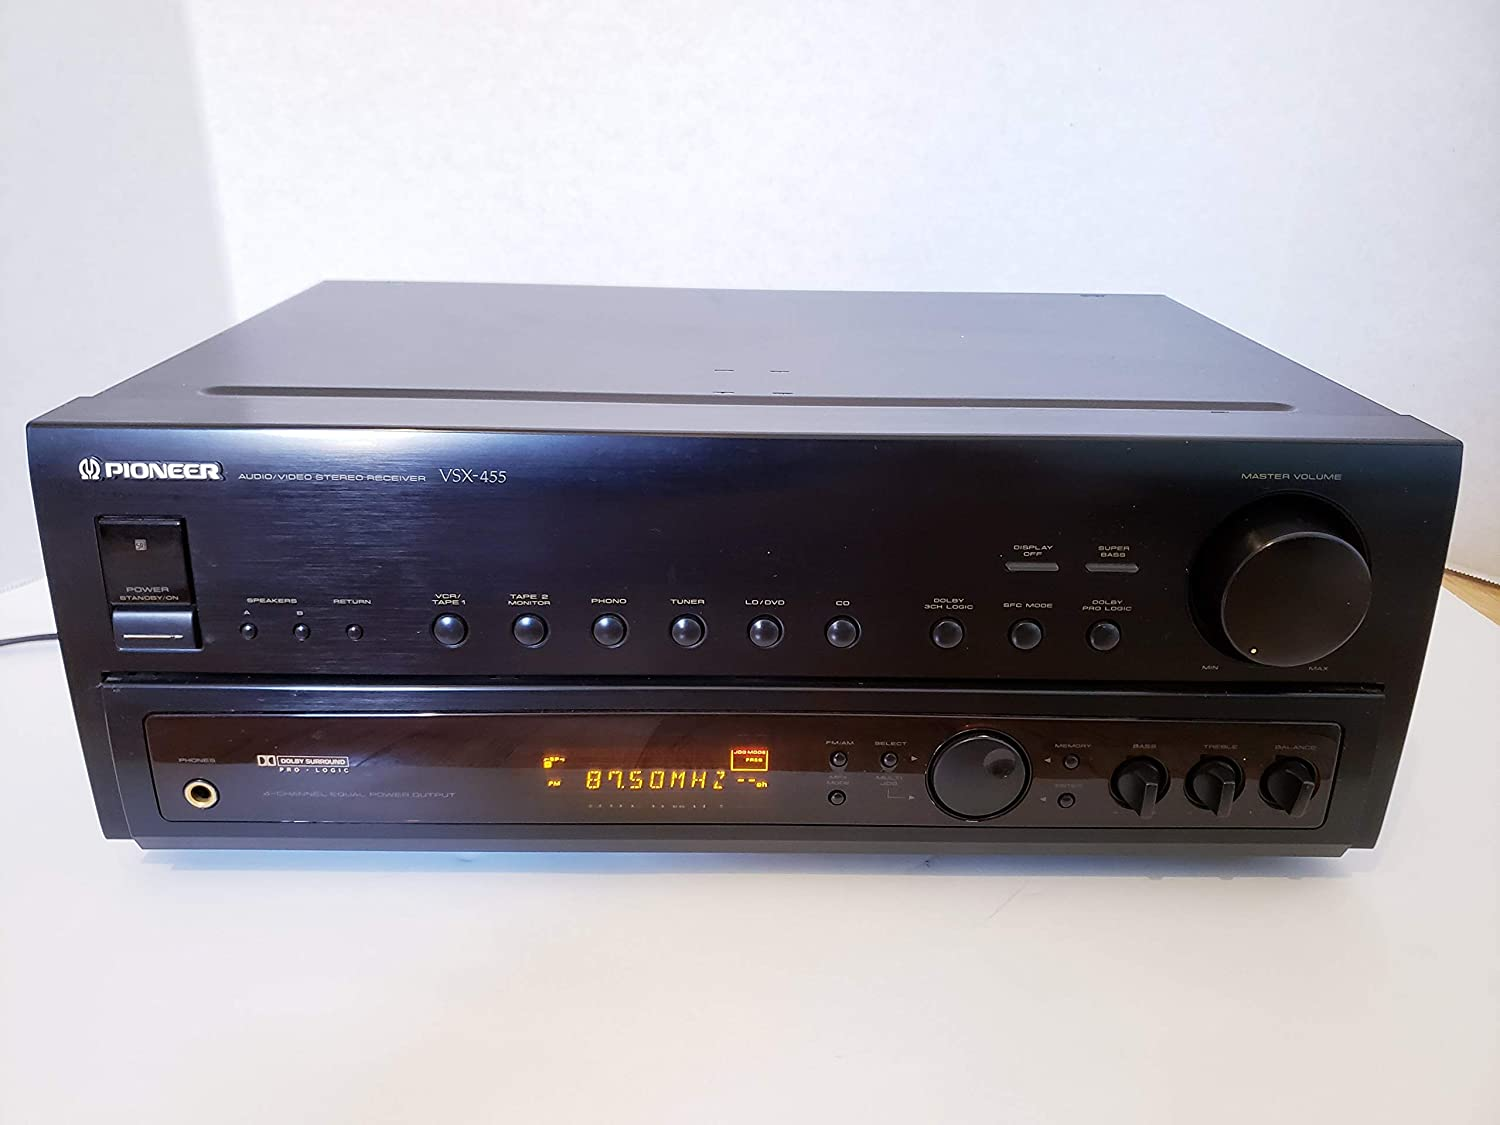 Pioneer Vsx455 Home Receiver - Dolby Pro Logic